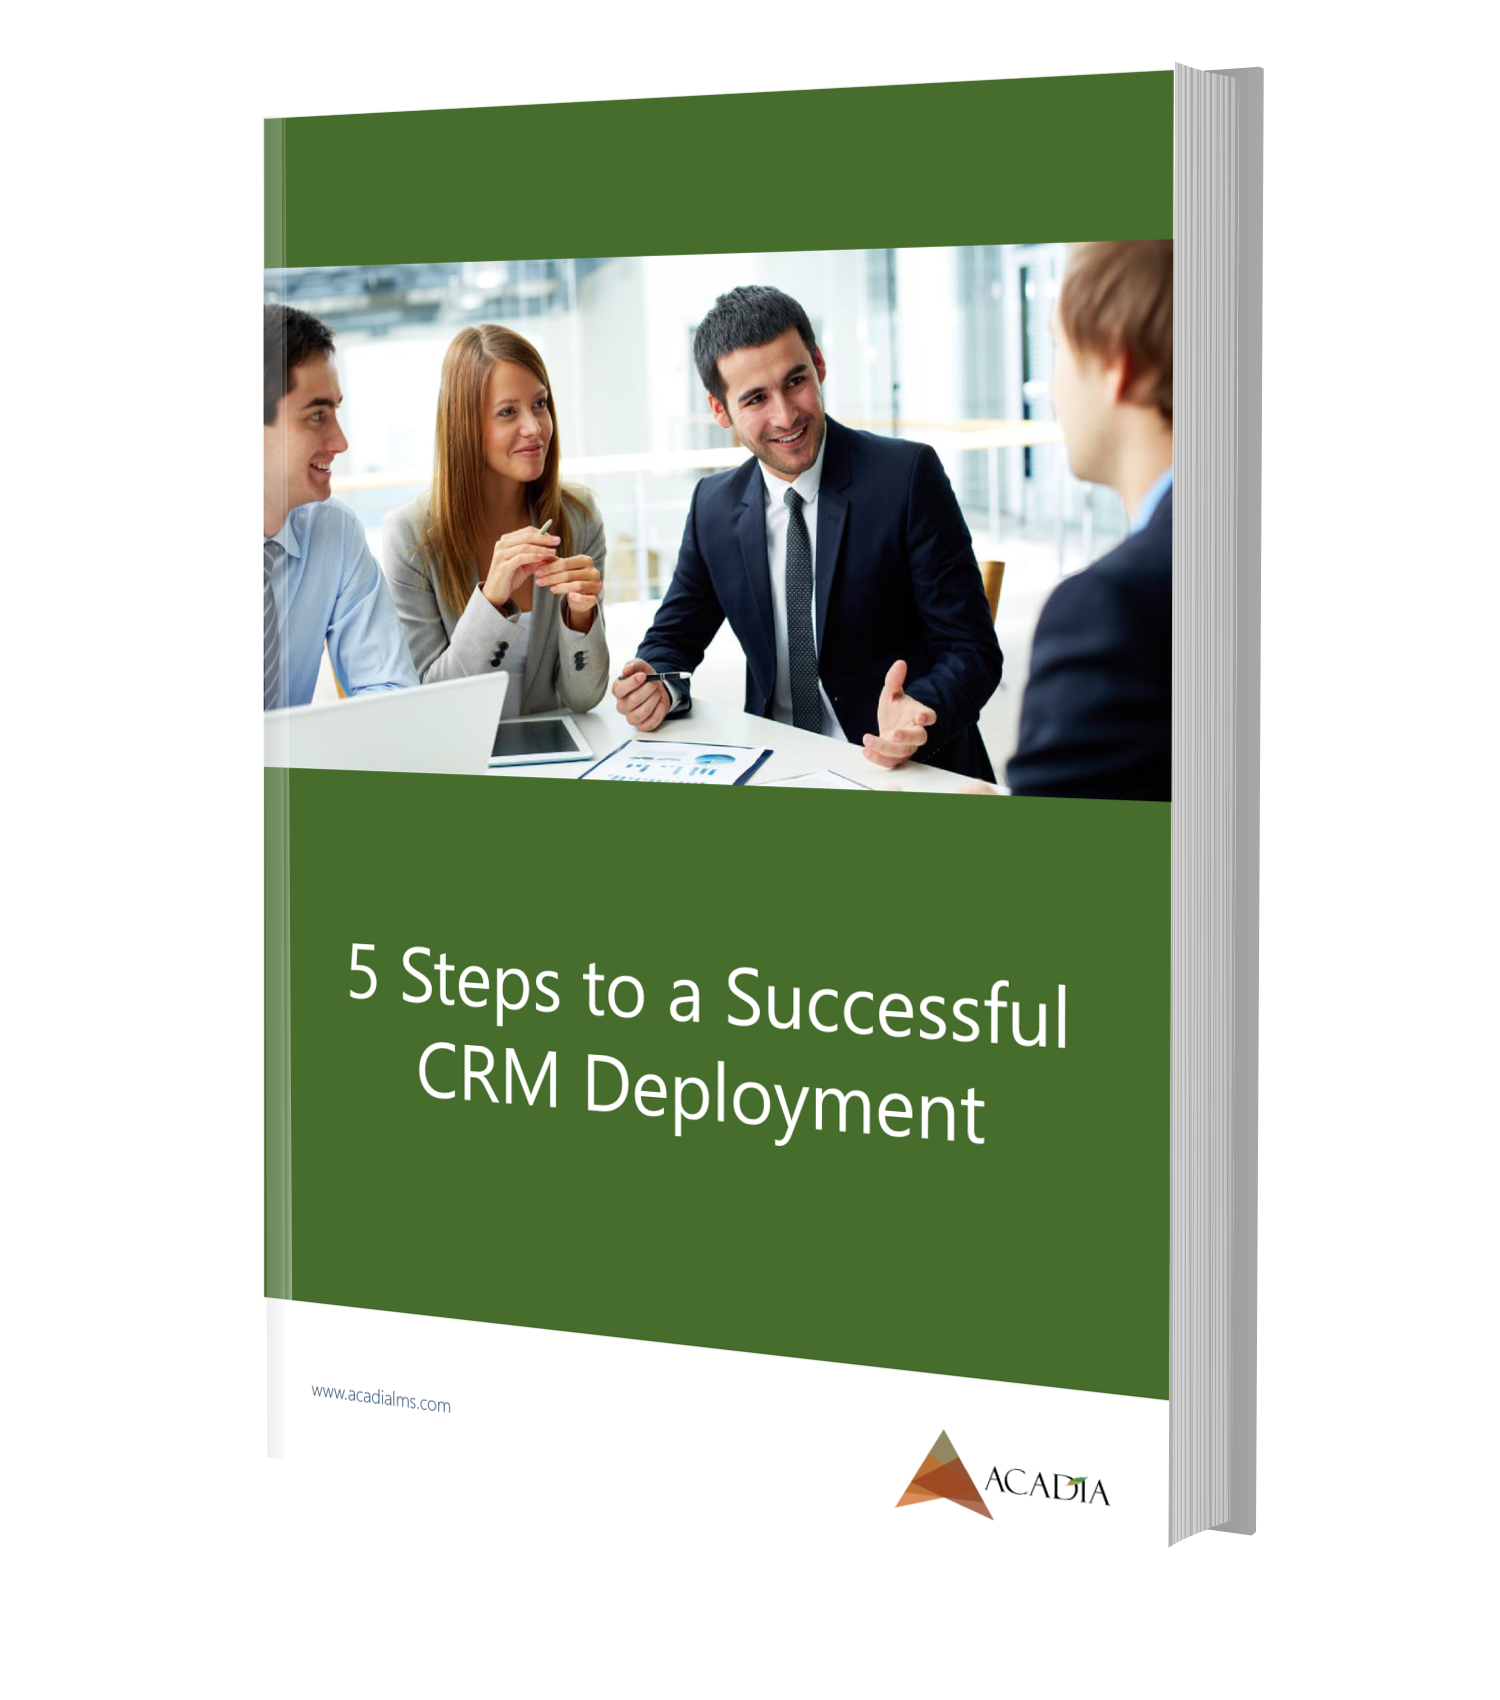 5 Steps to a Successful CRM Deployment eBook mockup